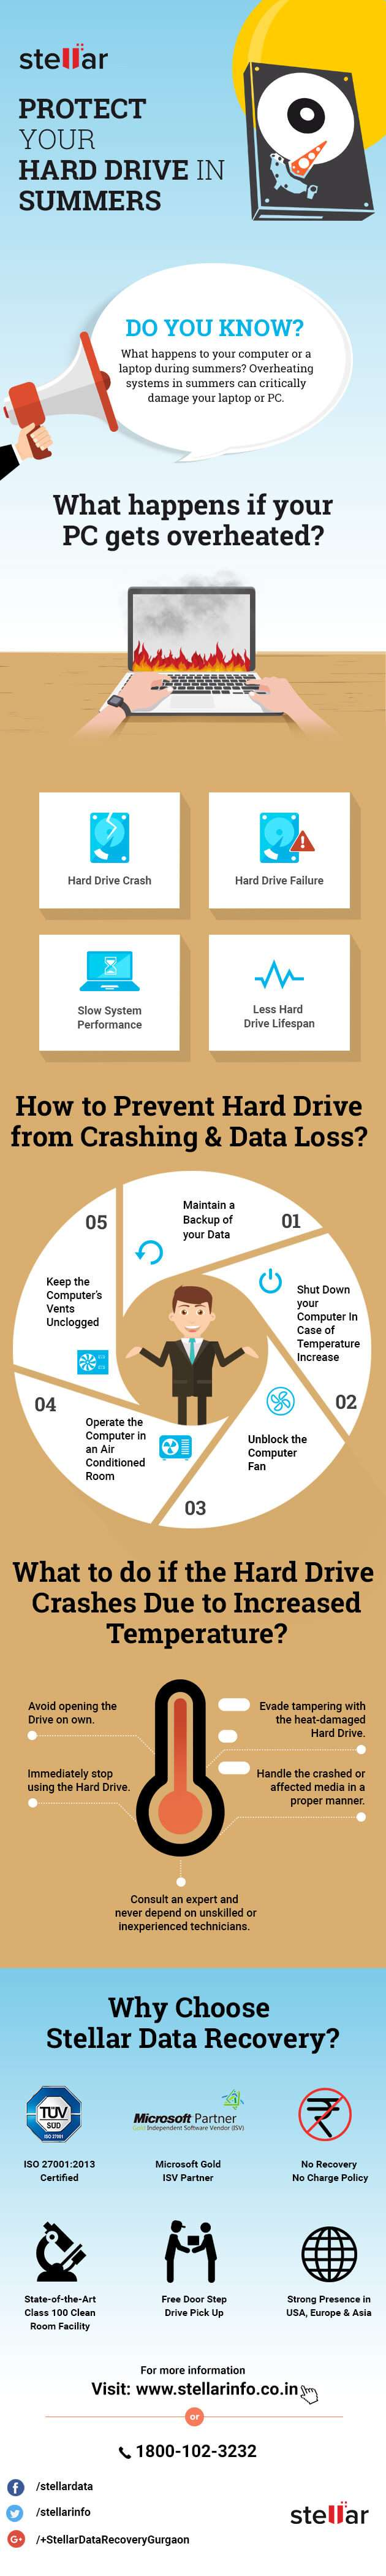 protect hard drive in summer